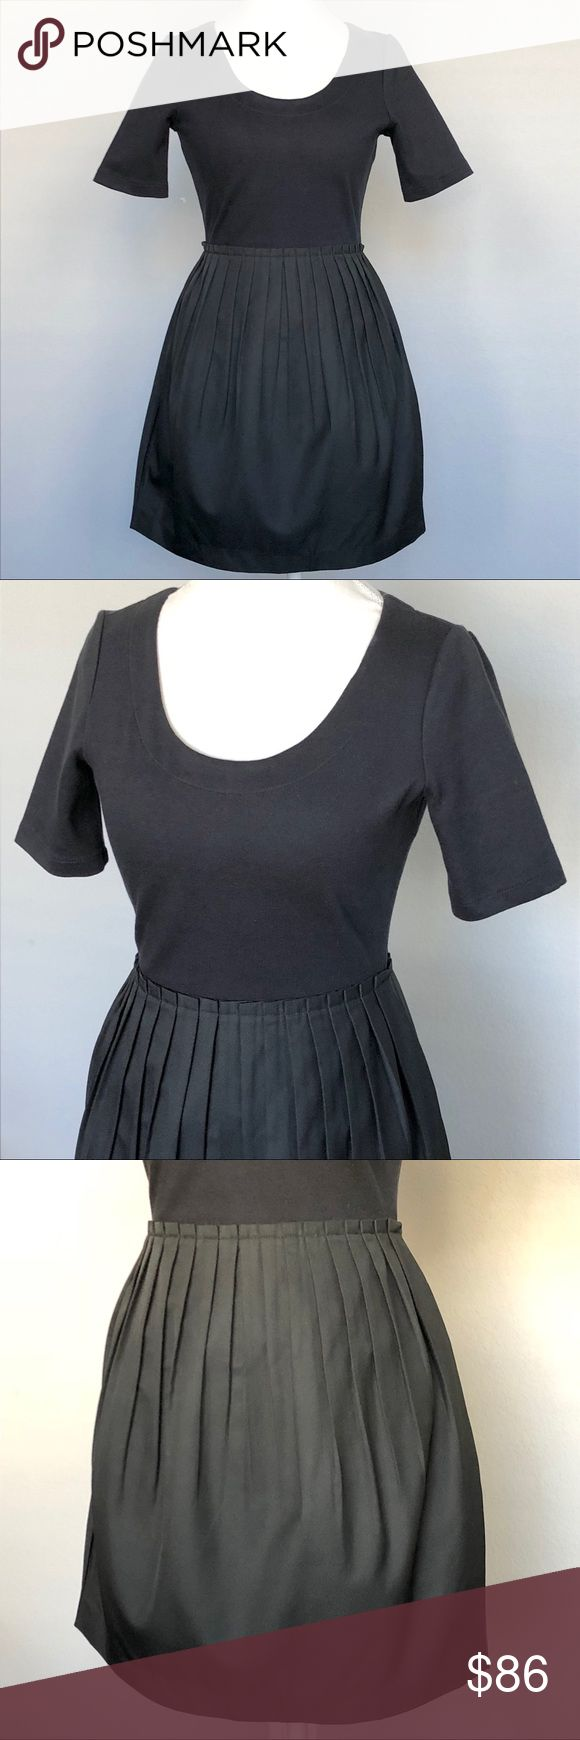 Kate Spade Saturday Tulip Dress Great upper stretch, elbow length sleeves, pleated tulip skirt - textured. Like new! kate spade Dresses